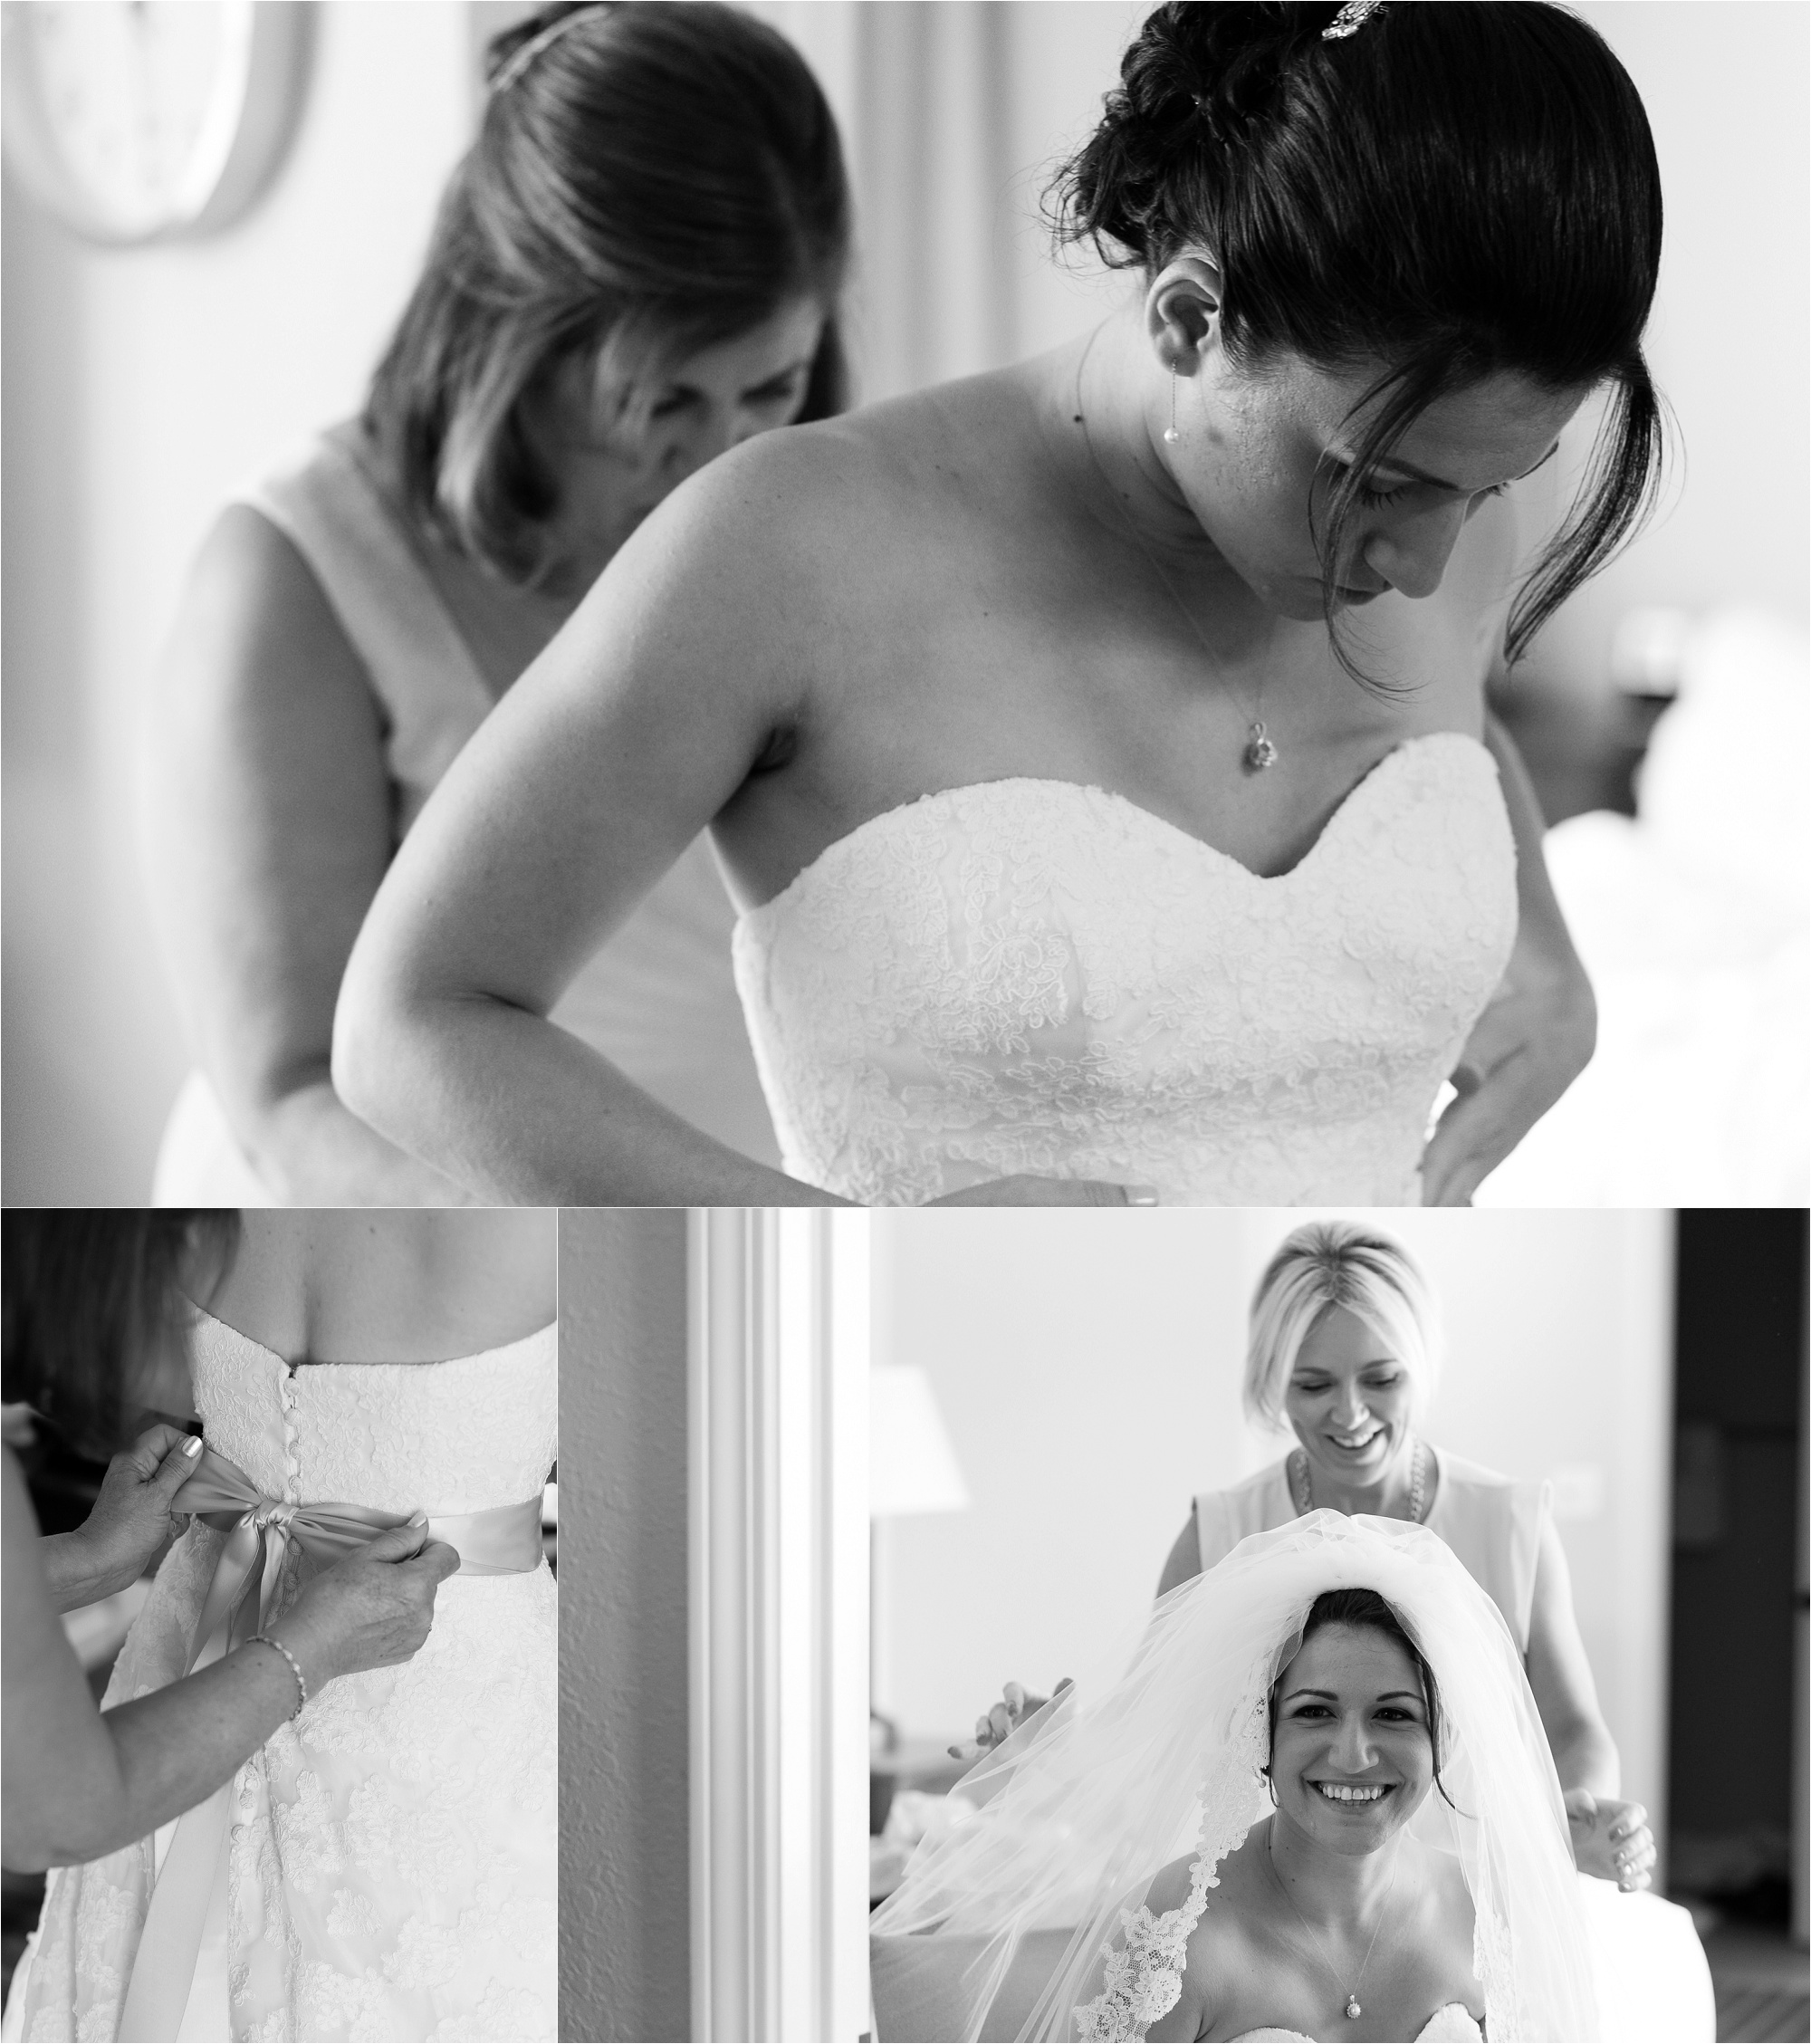 I love all the candid moments during the bride's getting ready prep